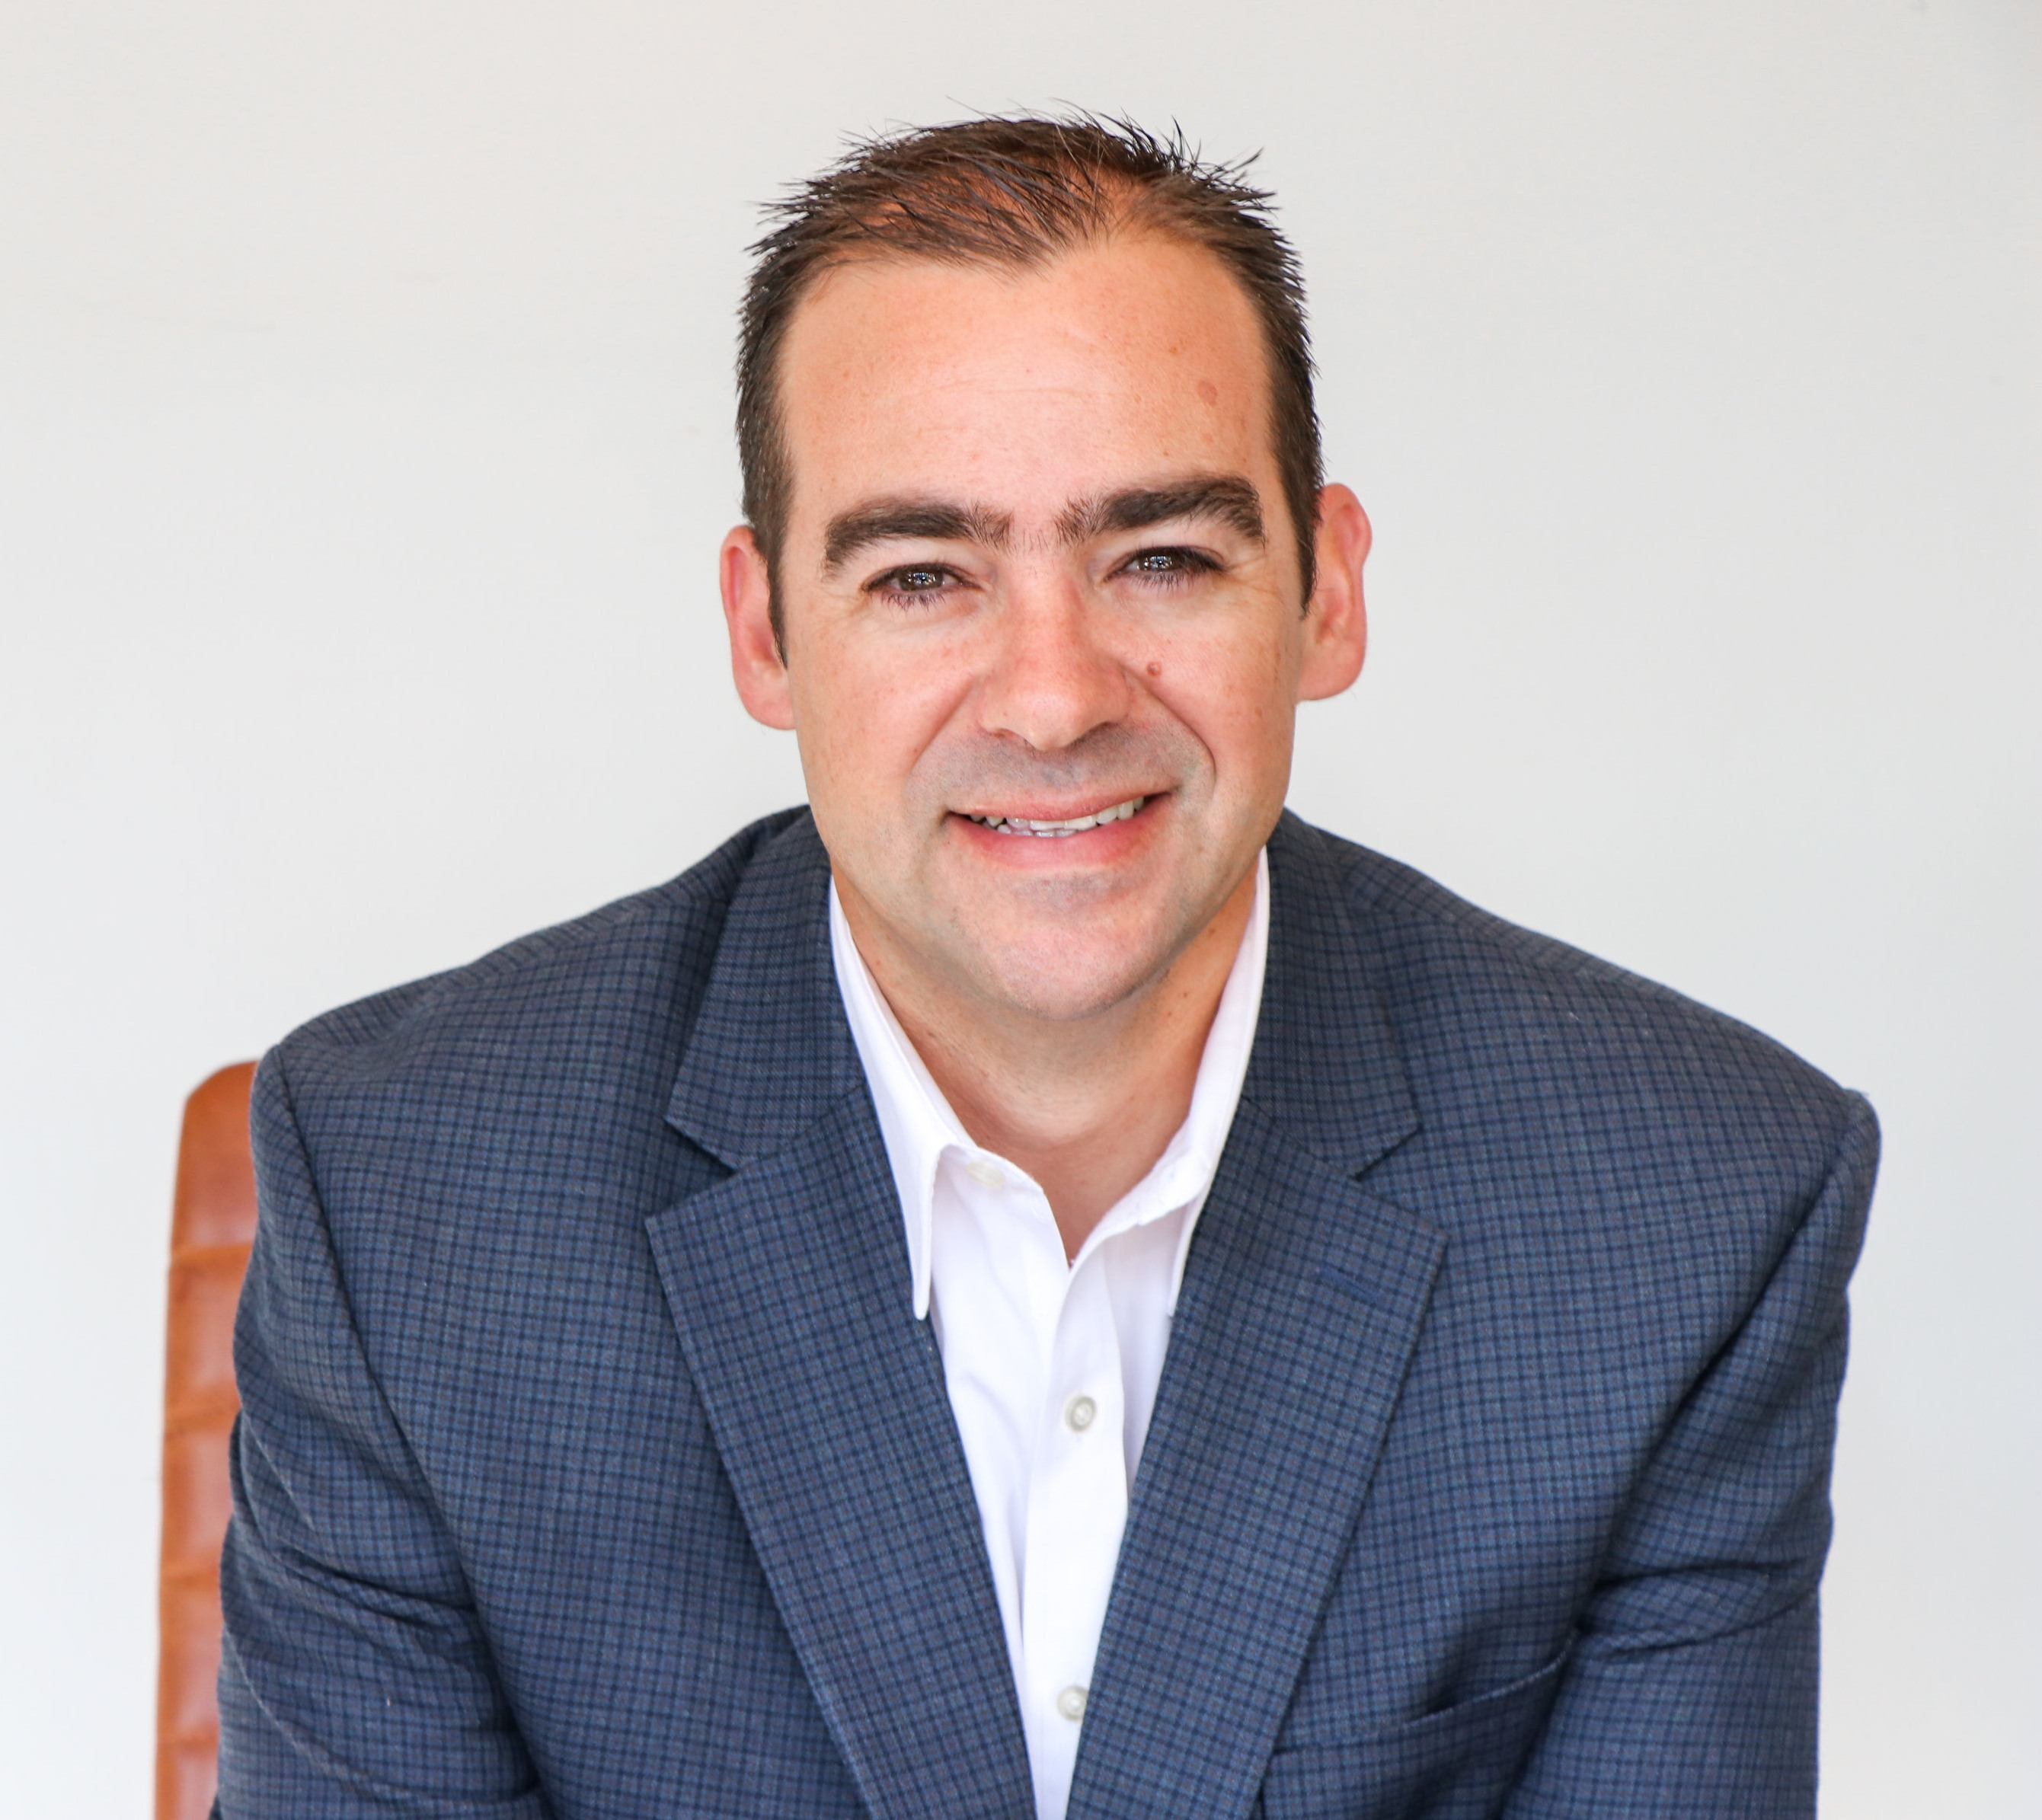 Jacques Fourie, the new CEO of Bridgestone South Africa. FleetWatch wishes him all the best of success on his new path.